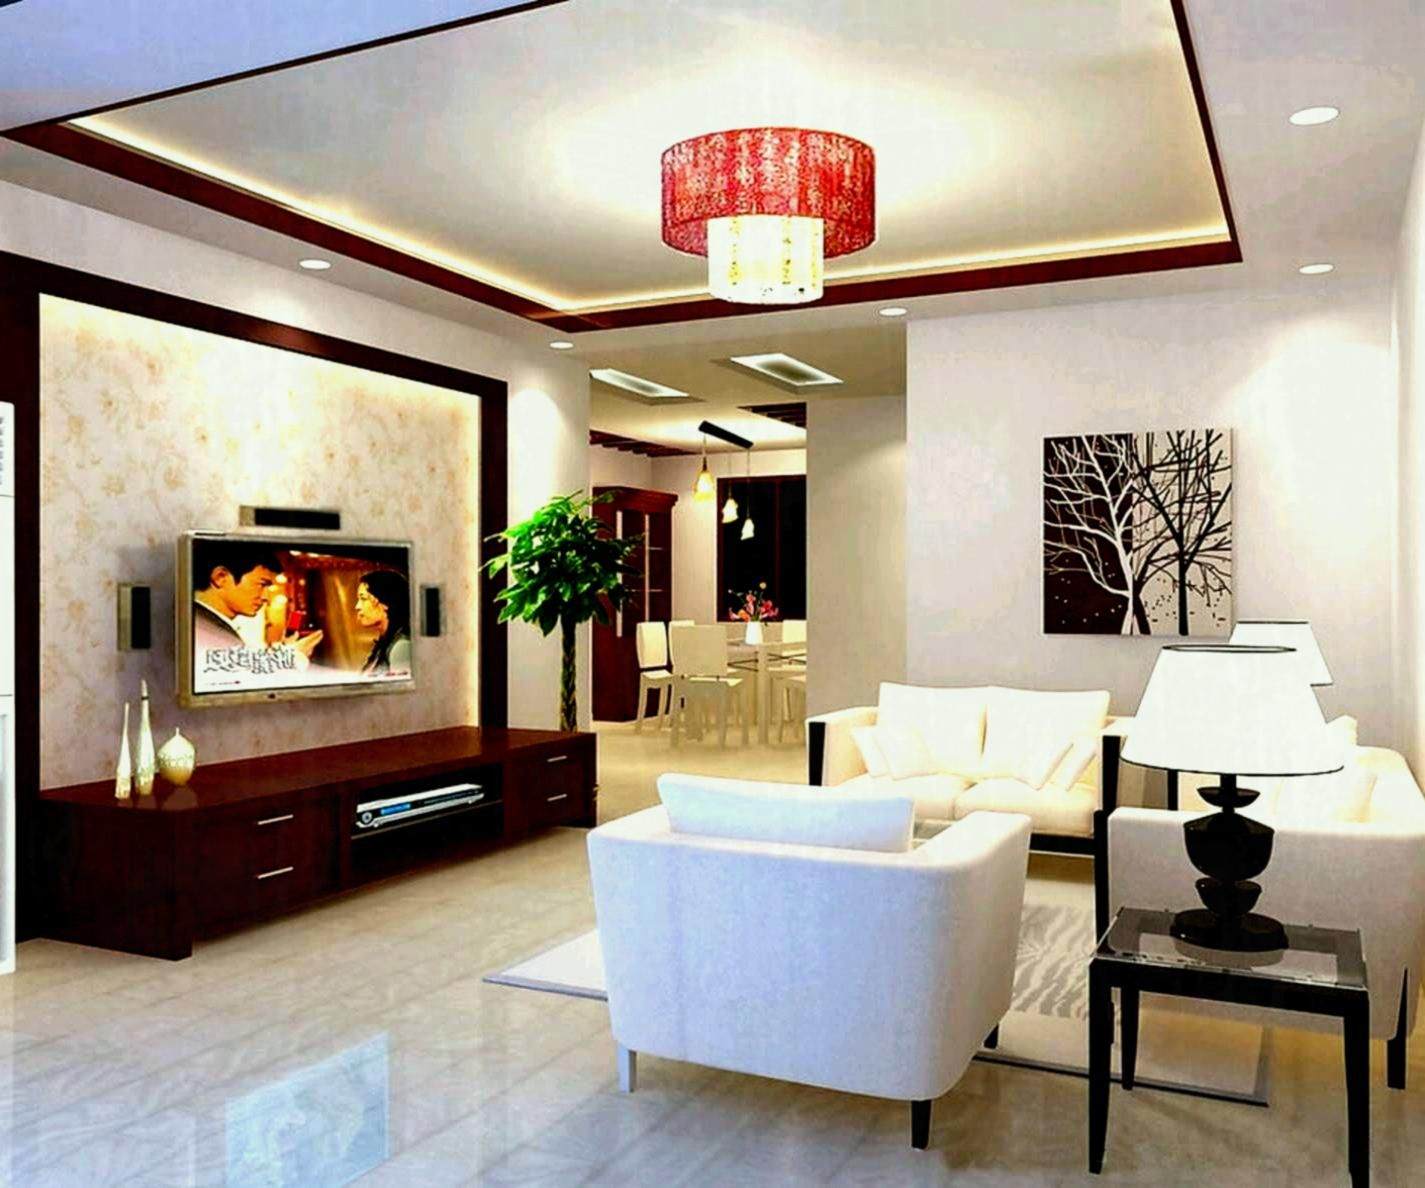 Pretty Home Interior Design For Middle Class Family With Pink Chandelier Modern Living Room Interior Hall Interior Design Interior Design Furniture